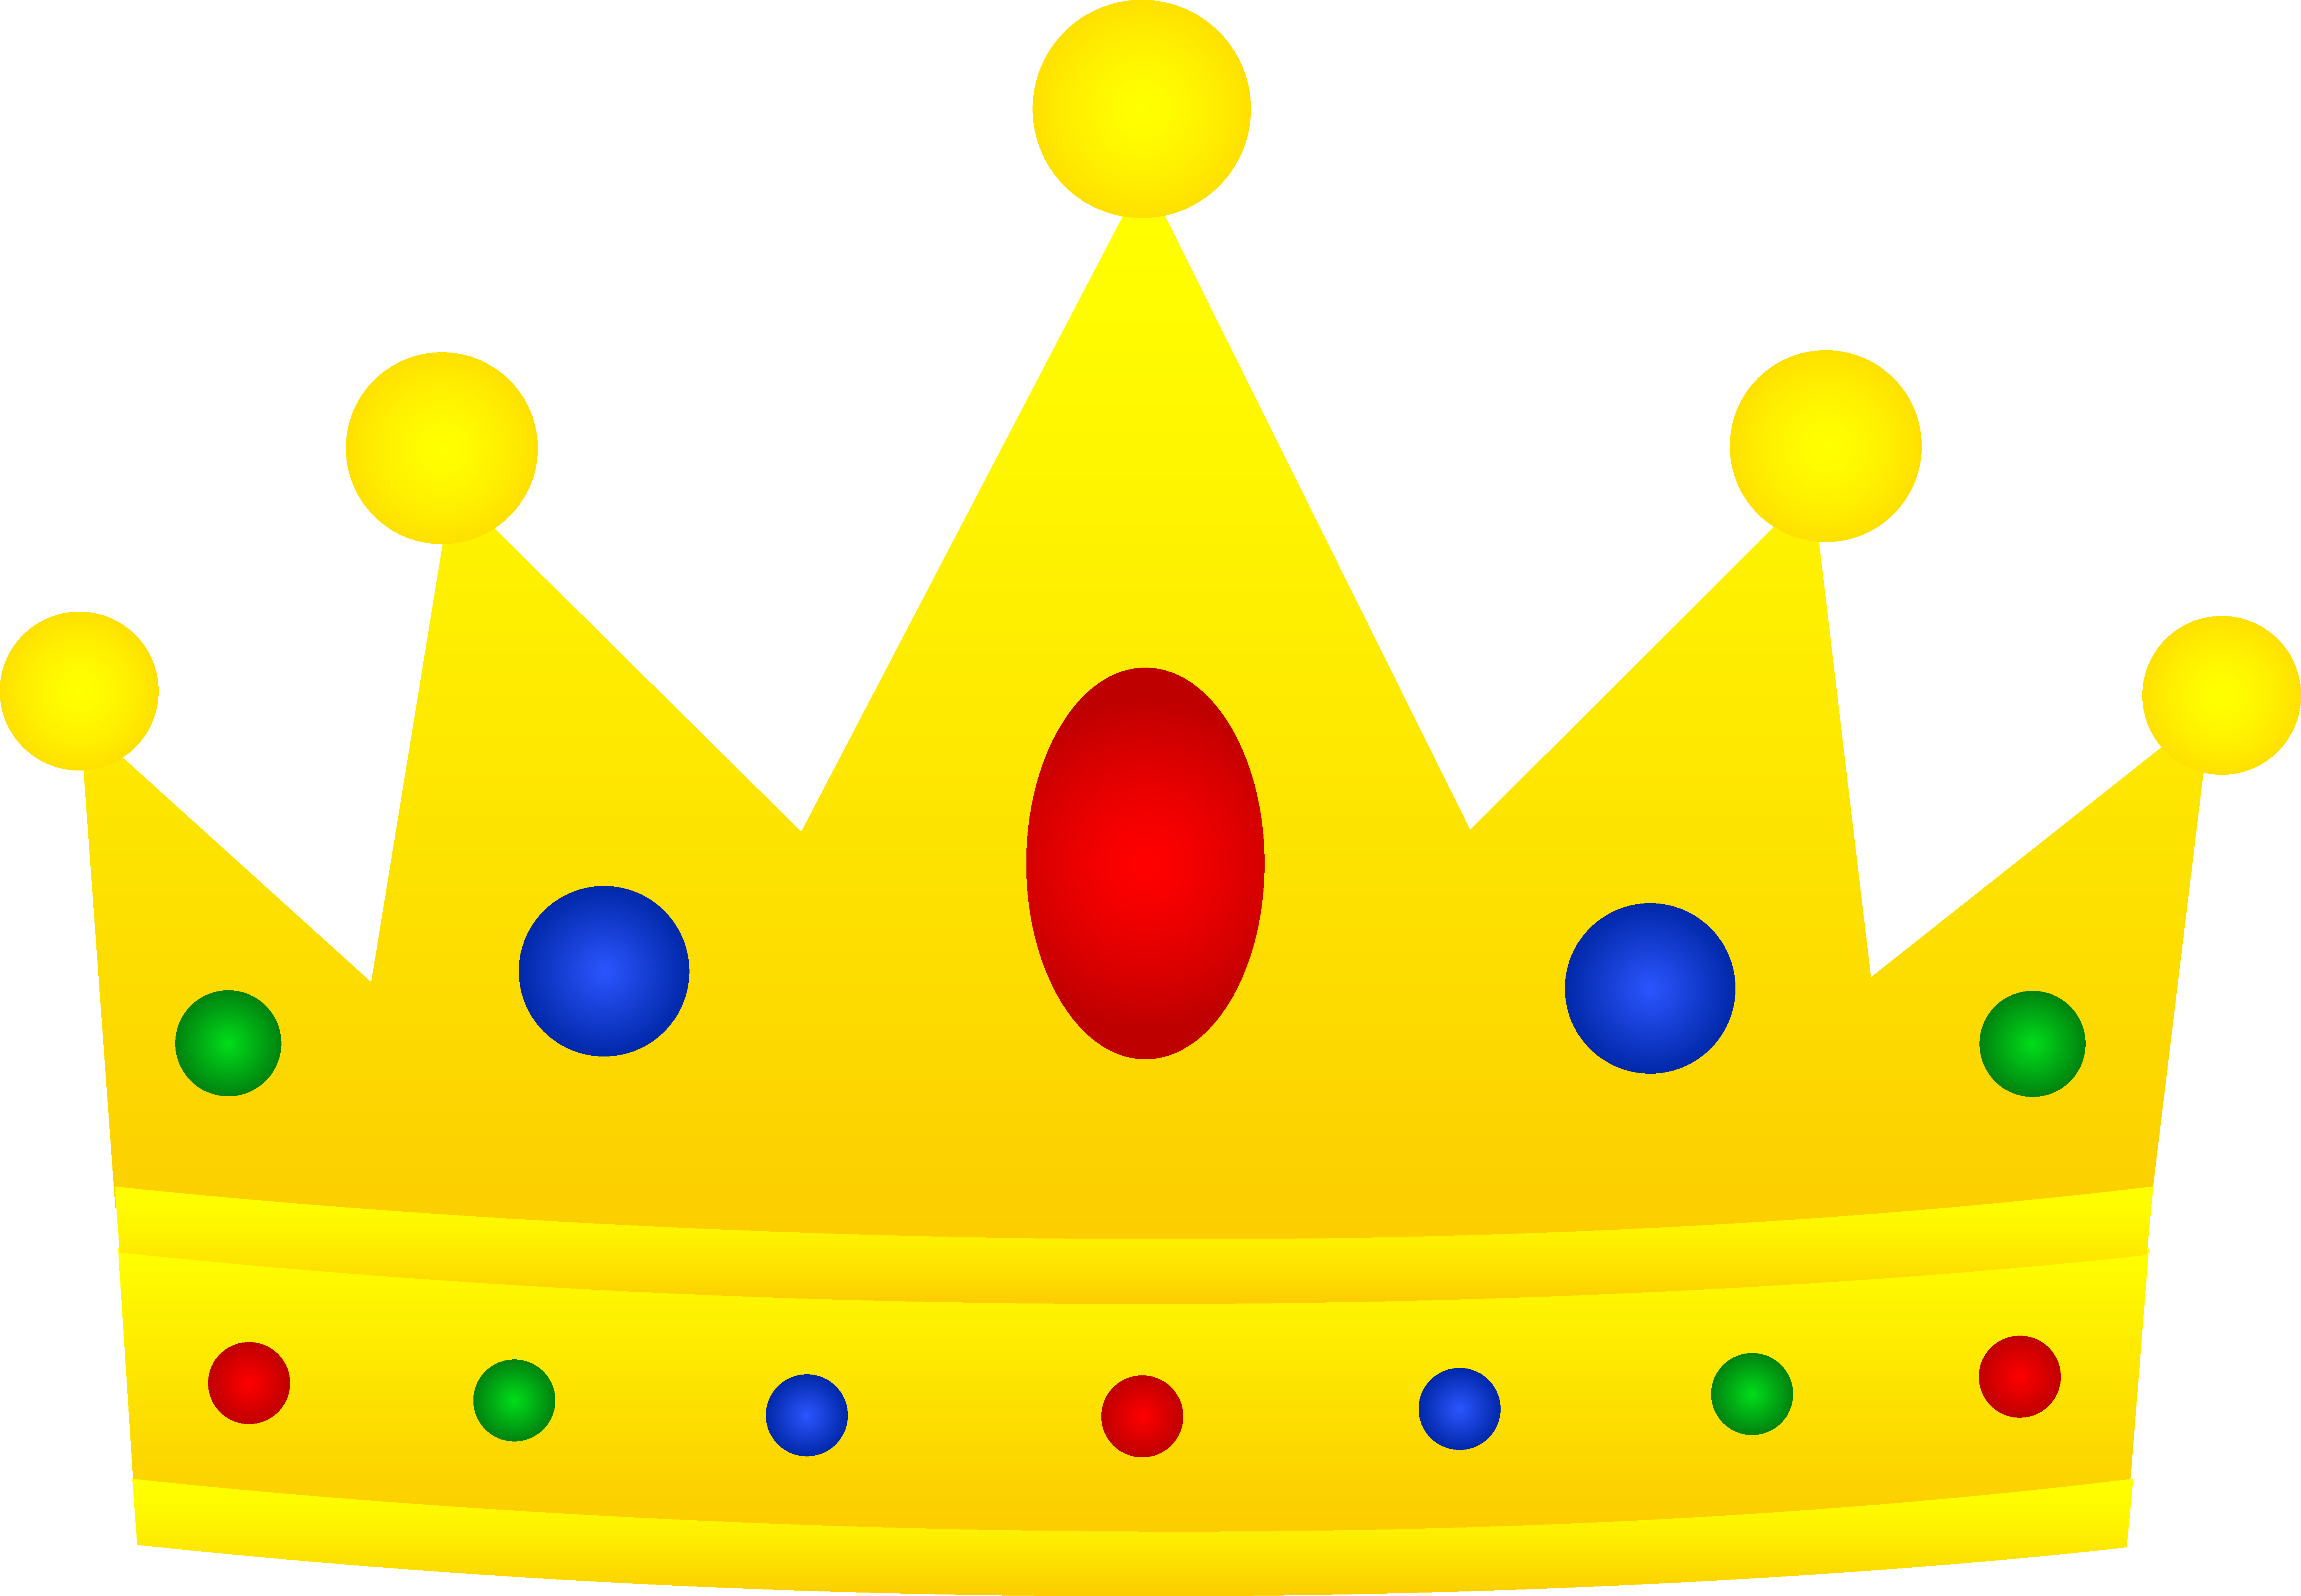 African king crown clipart jpg black and white stock King crown clip art free - ClipartFest jpg black and white stock